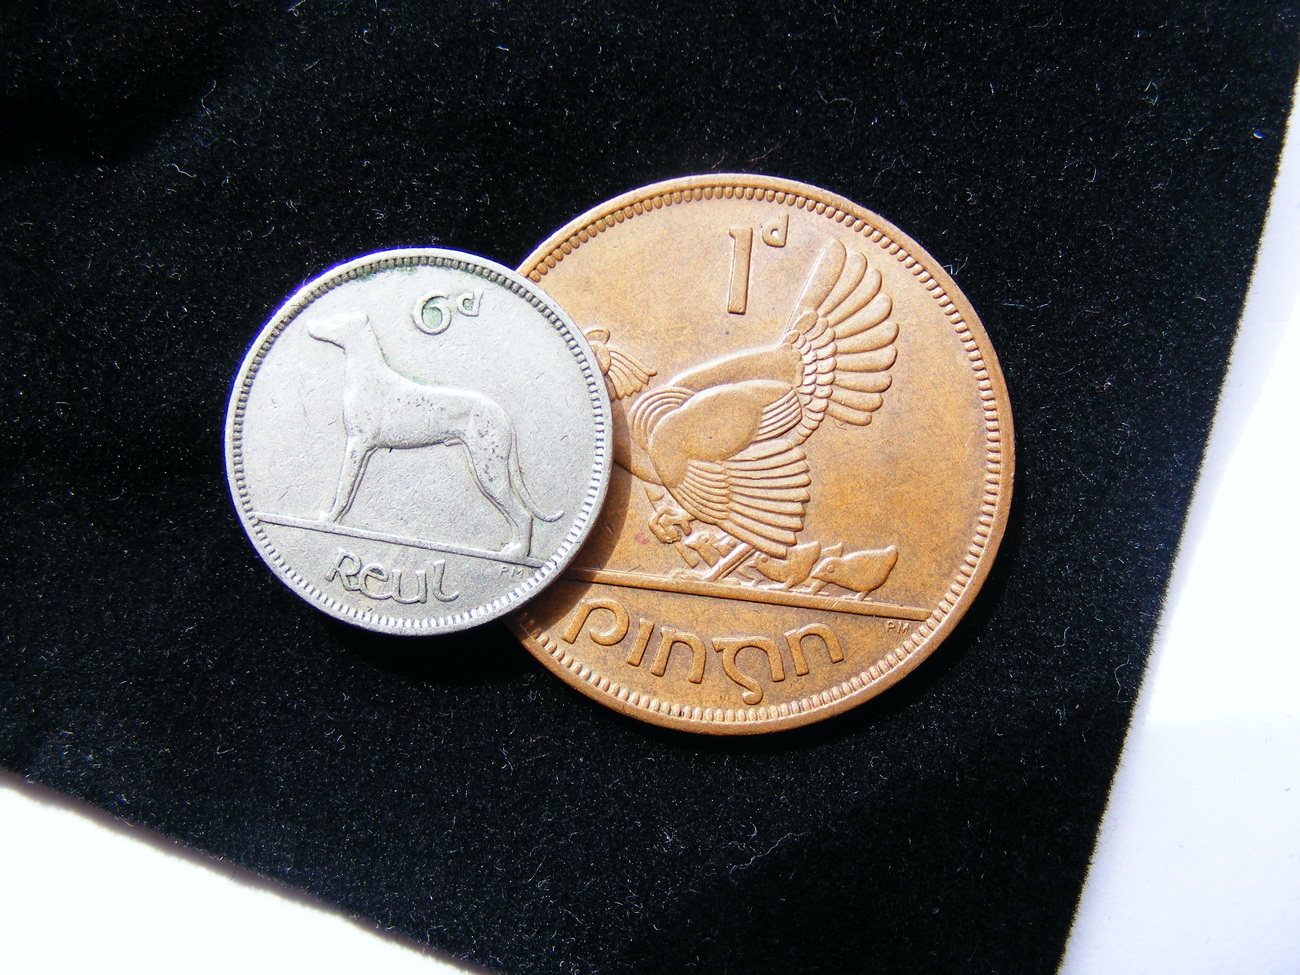 Authentic Lucky Irish Wedding Coins - A Sixpence And A Penny In A Plush Velvet P